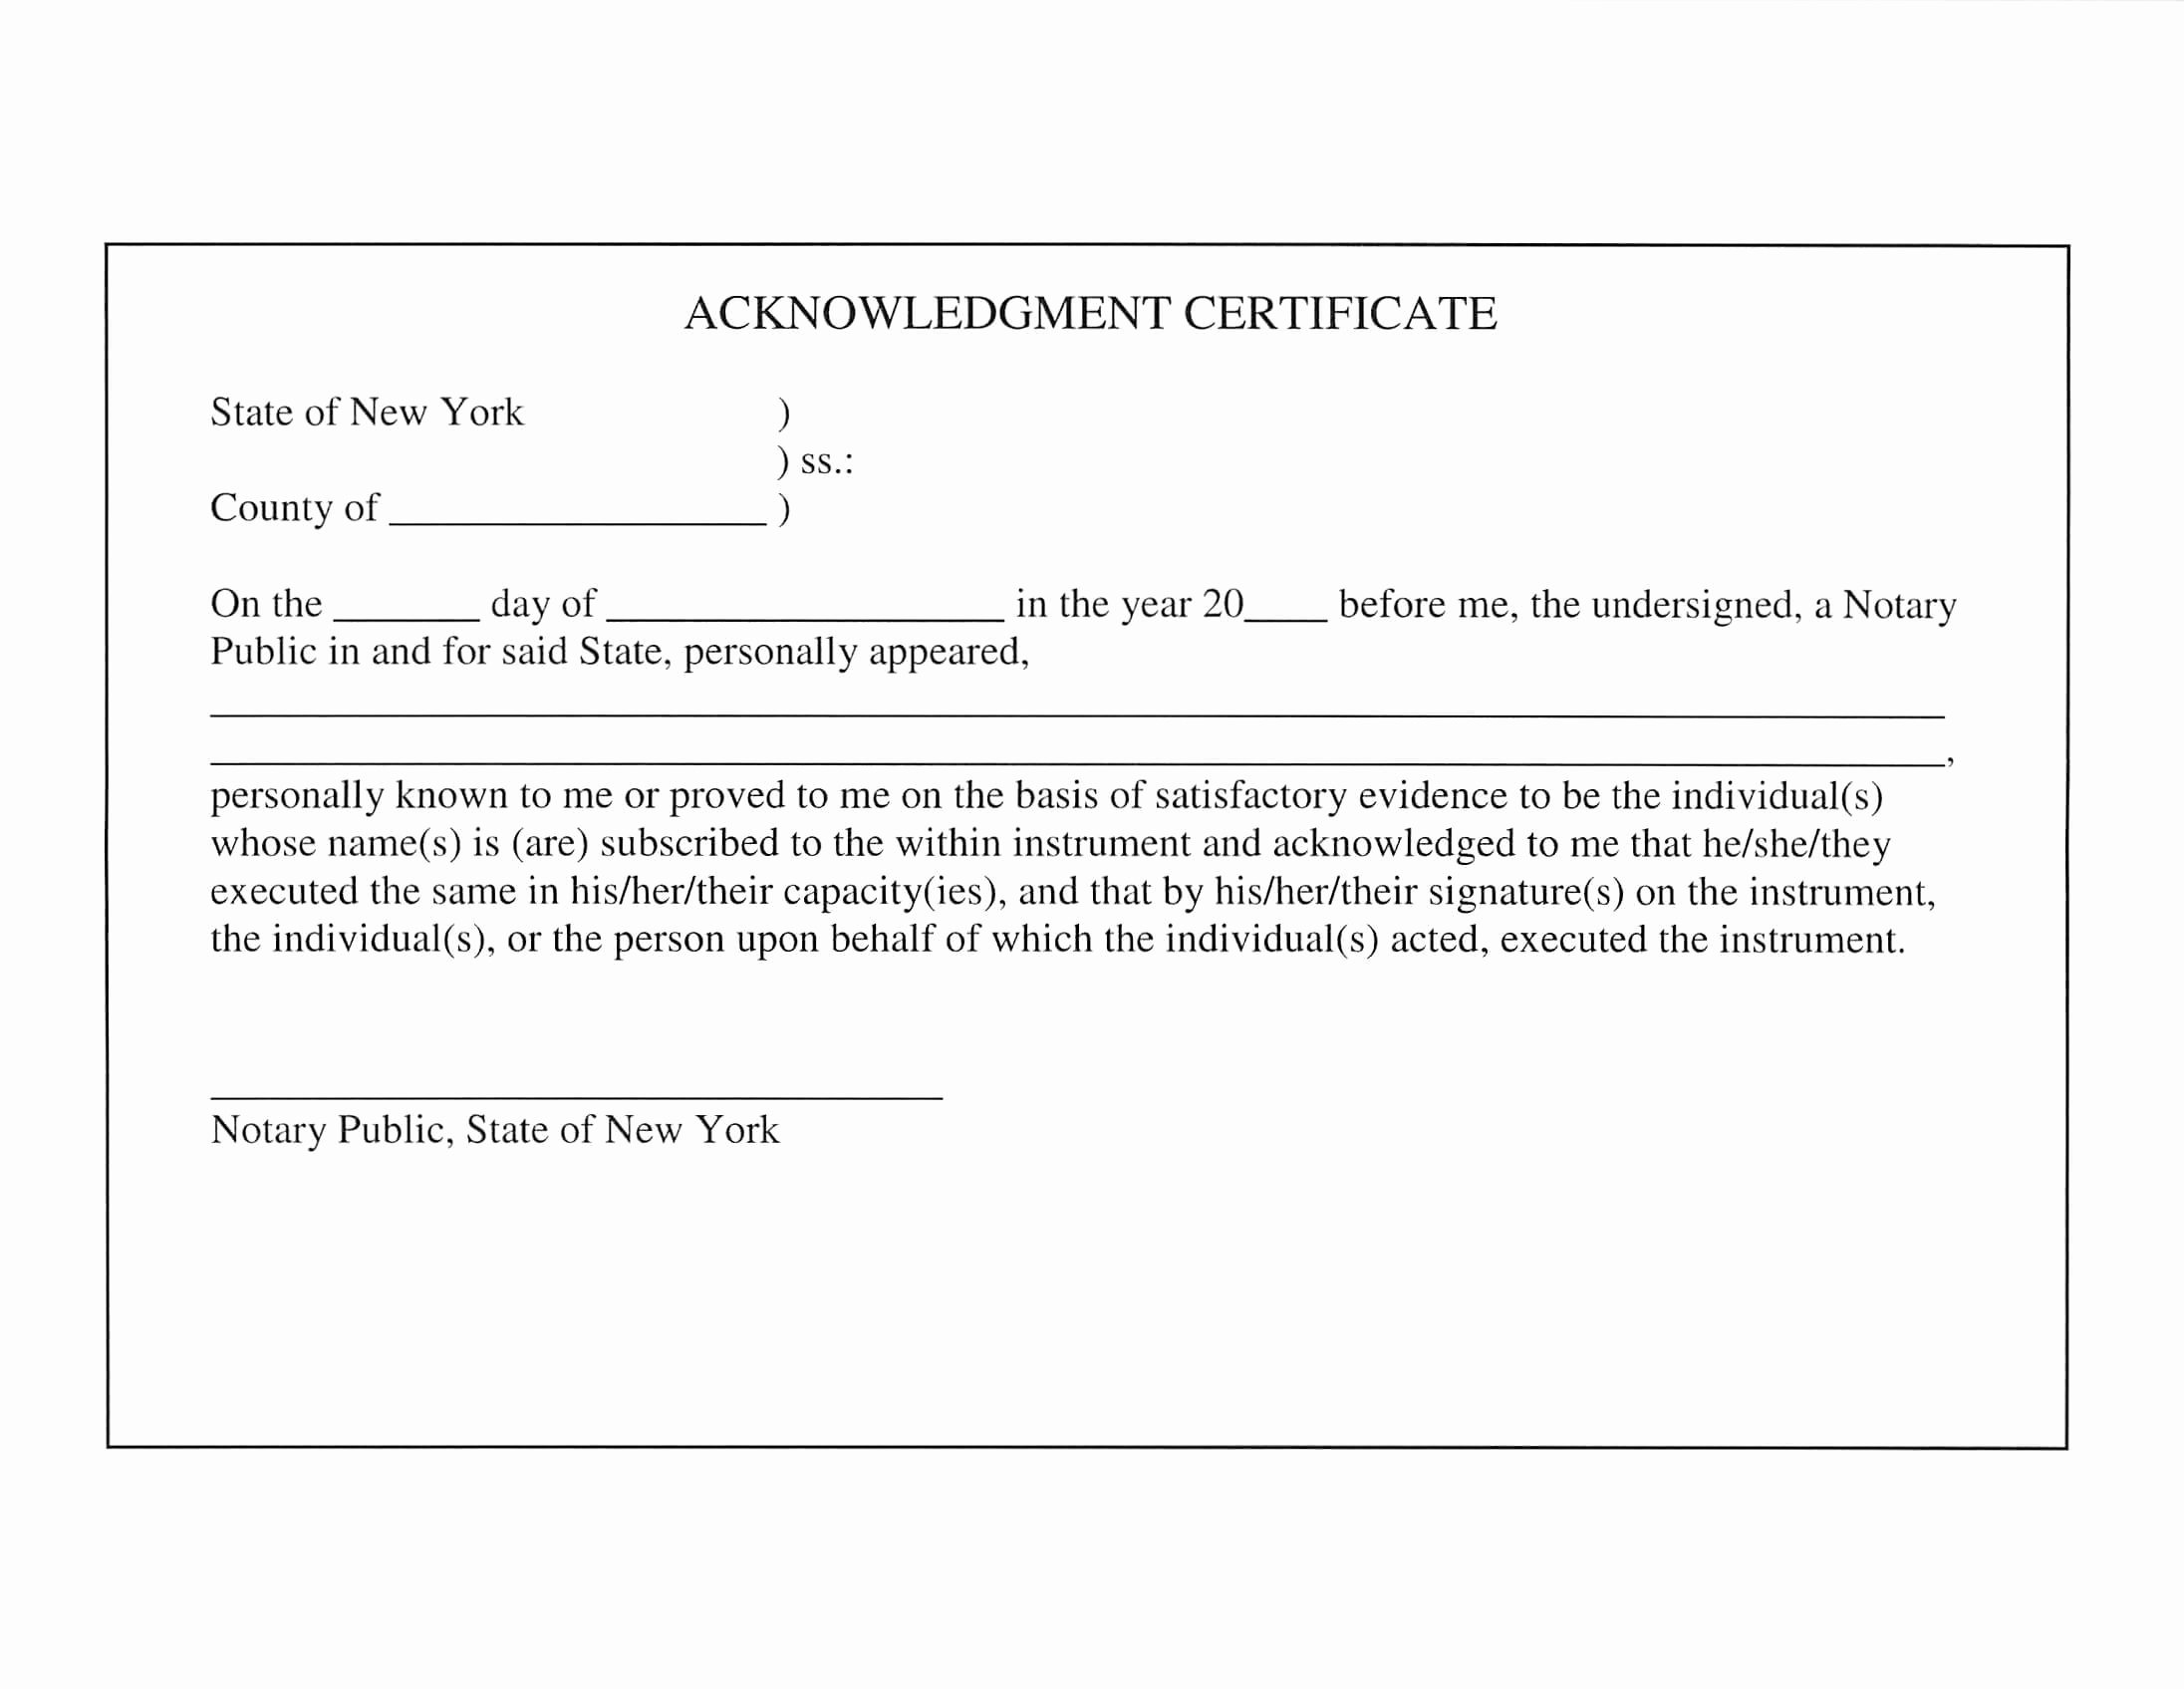 Certificate Of Acknowledgement Template Inspirational Ultimate Guide On How to Get An Apostille Done In New York